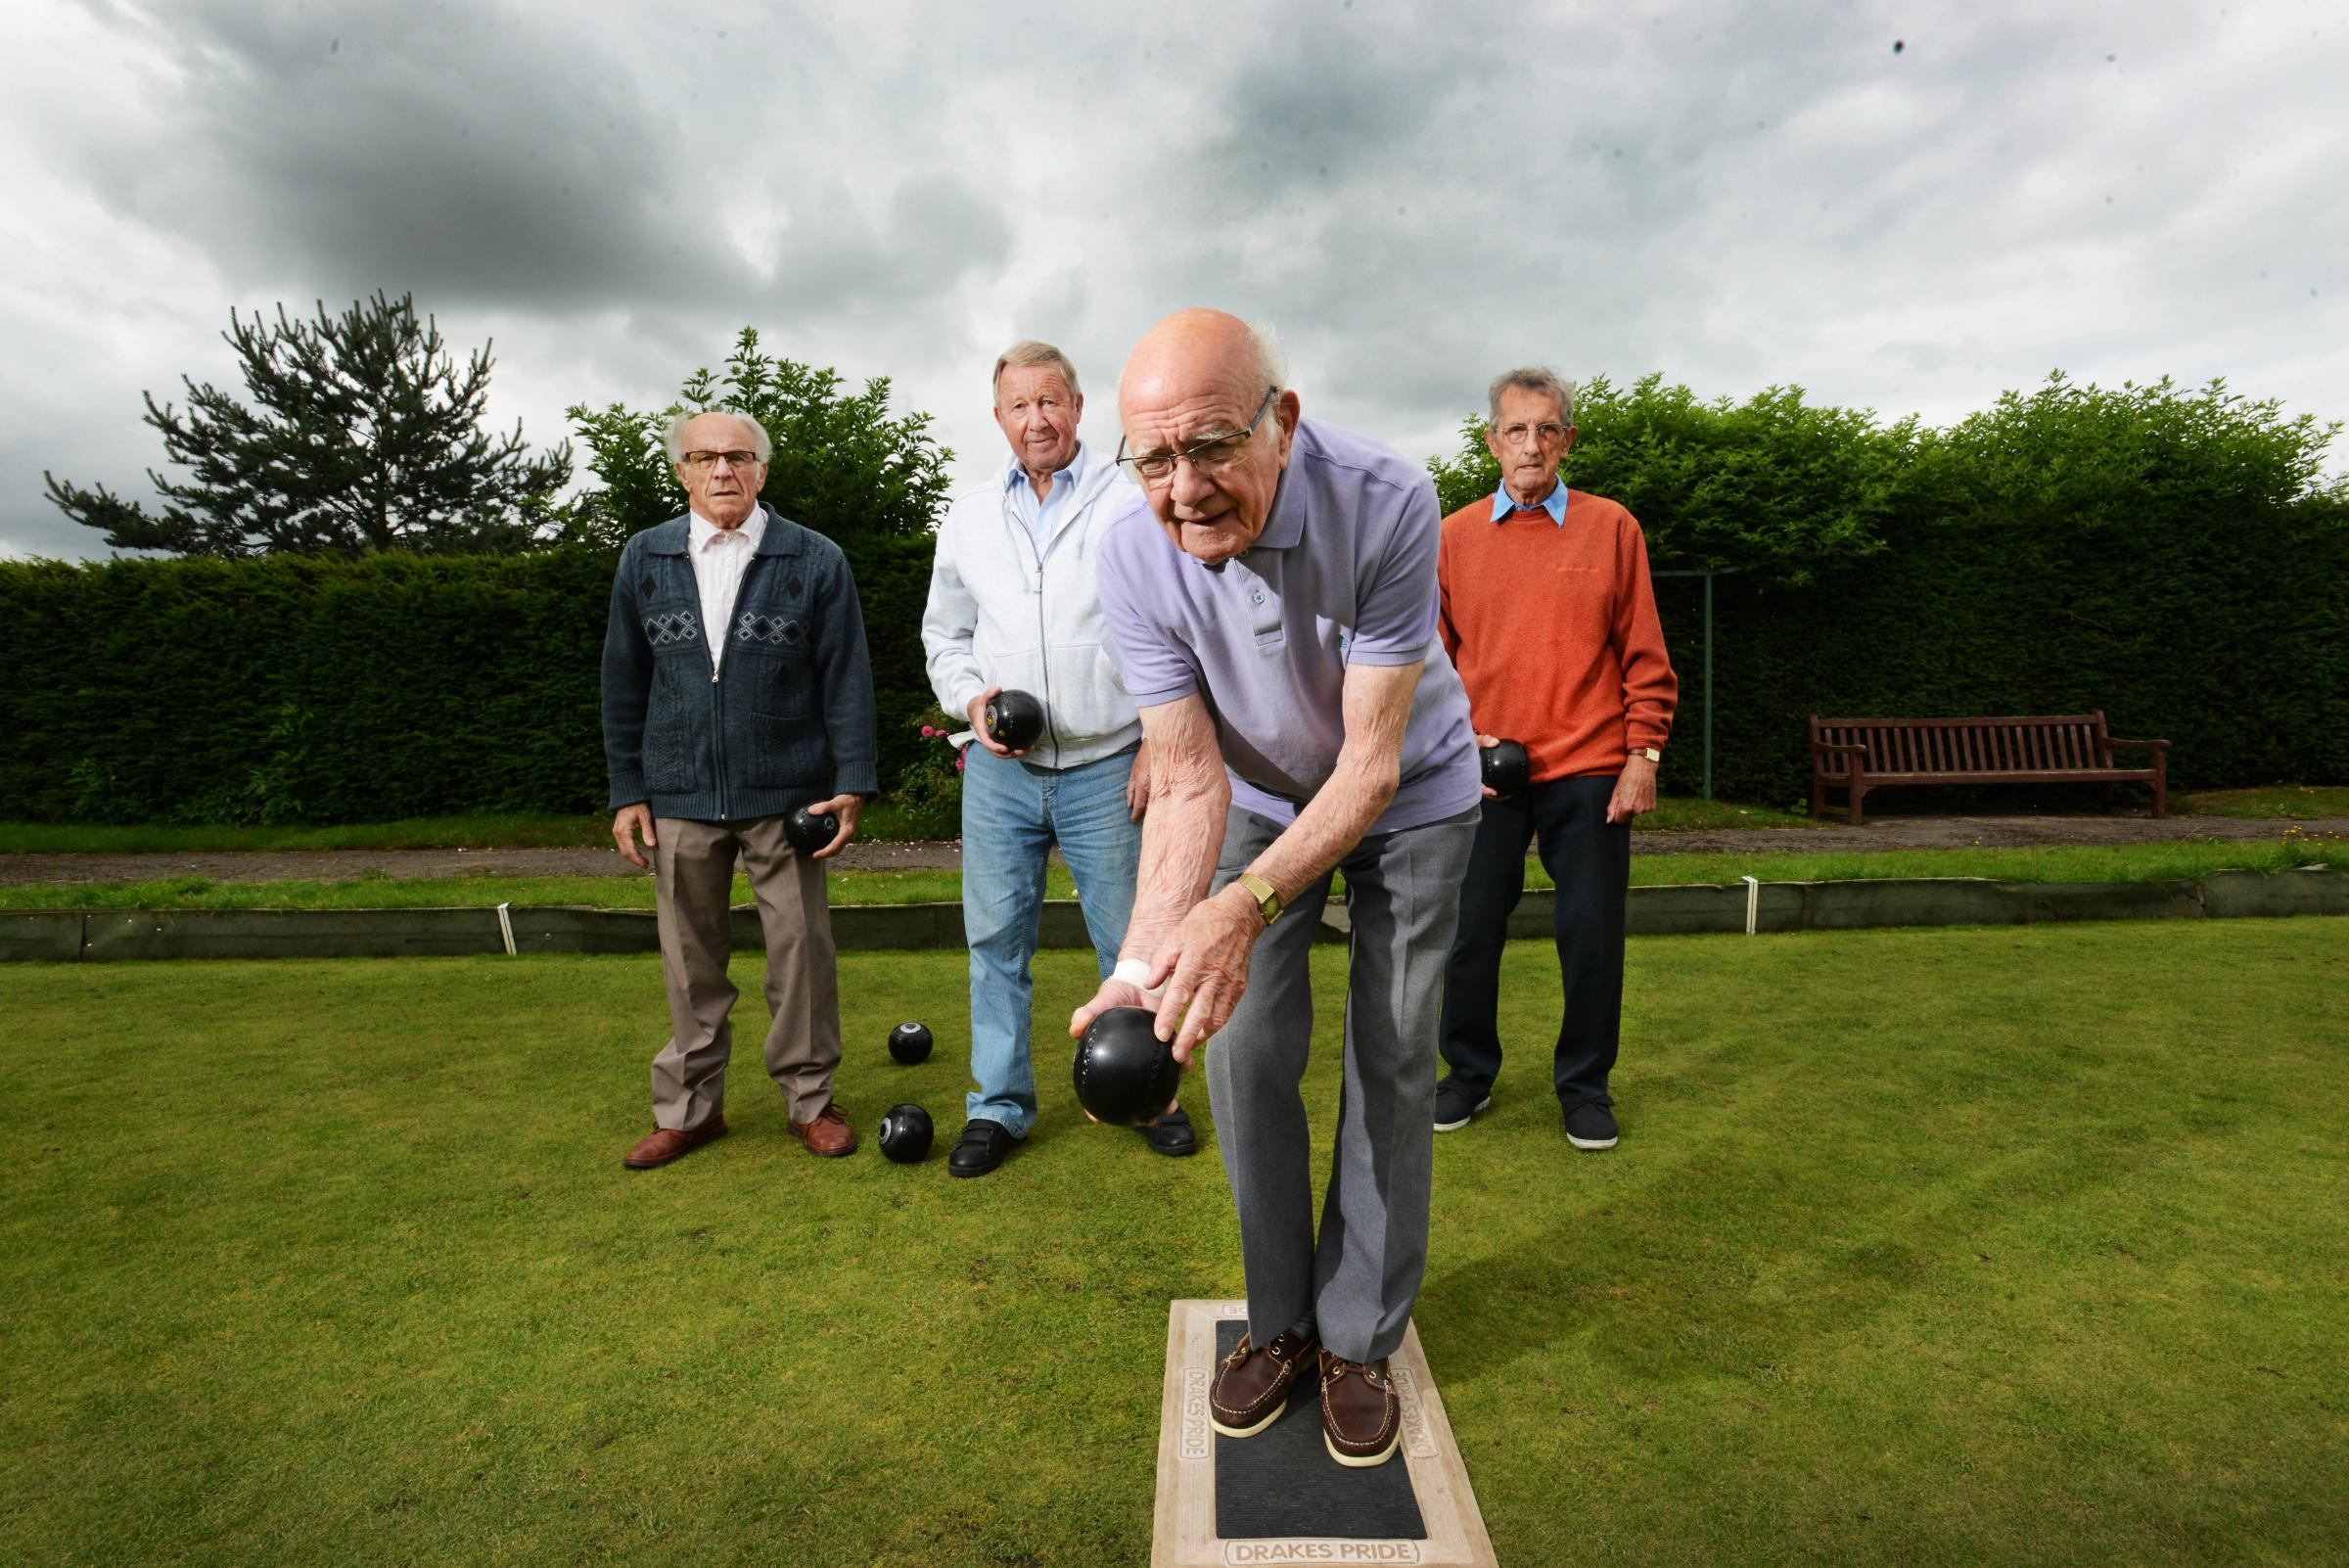 Blackbird Leys Bowls Club on its 50th anniversary. Keith Forster, Gordon Roper, Les Aldridge, and Kenneth Painter. Picture by Richard Cave